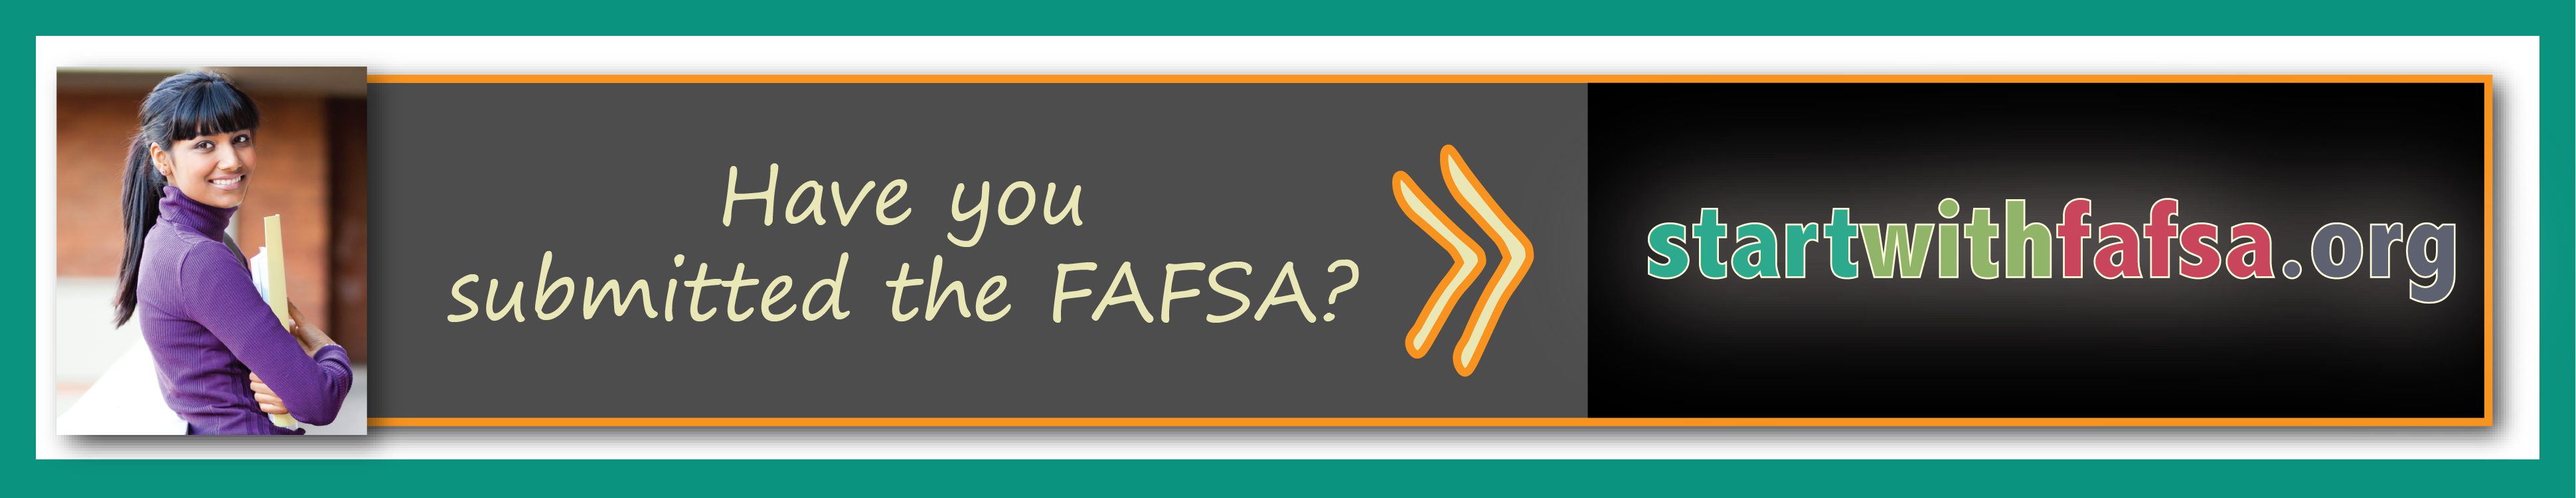 Have you submitted the FAFSA? StartWithFAFSA.org